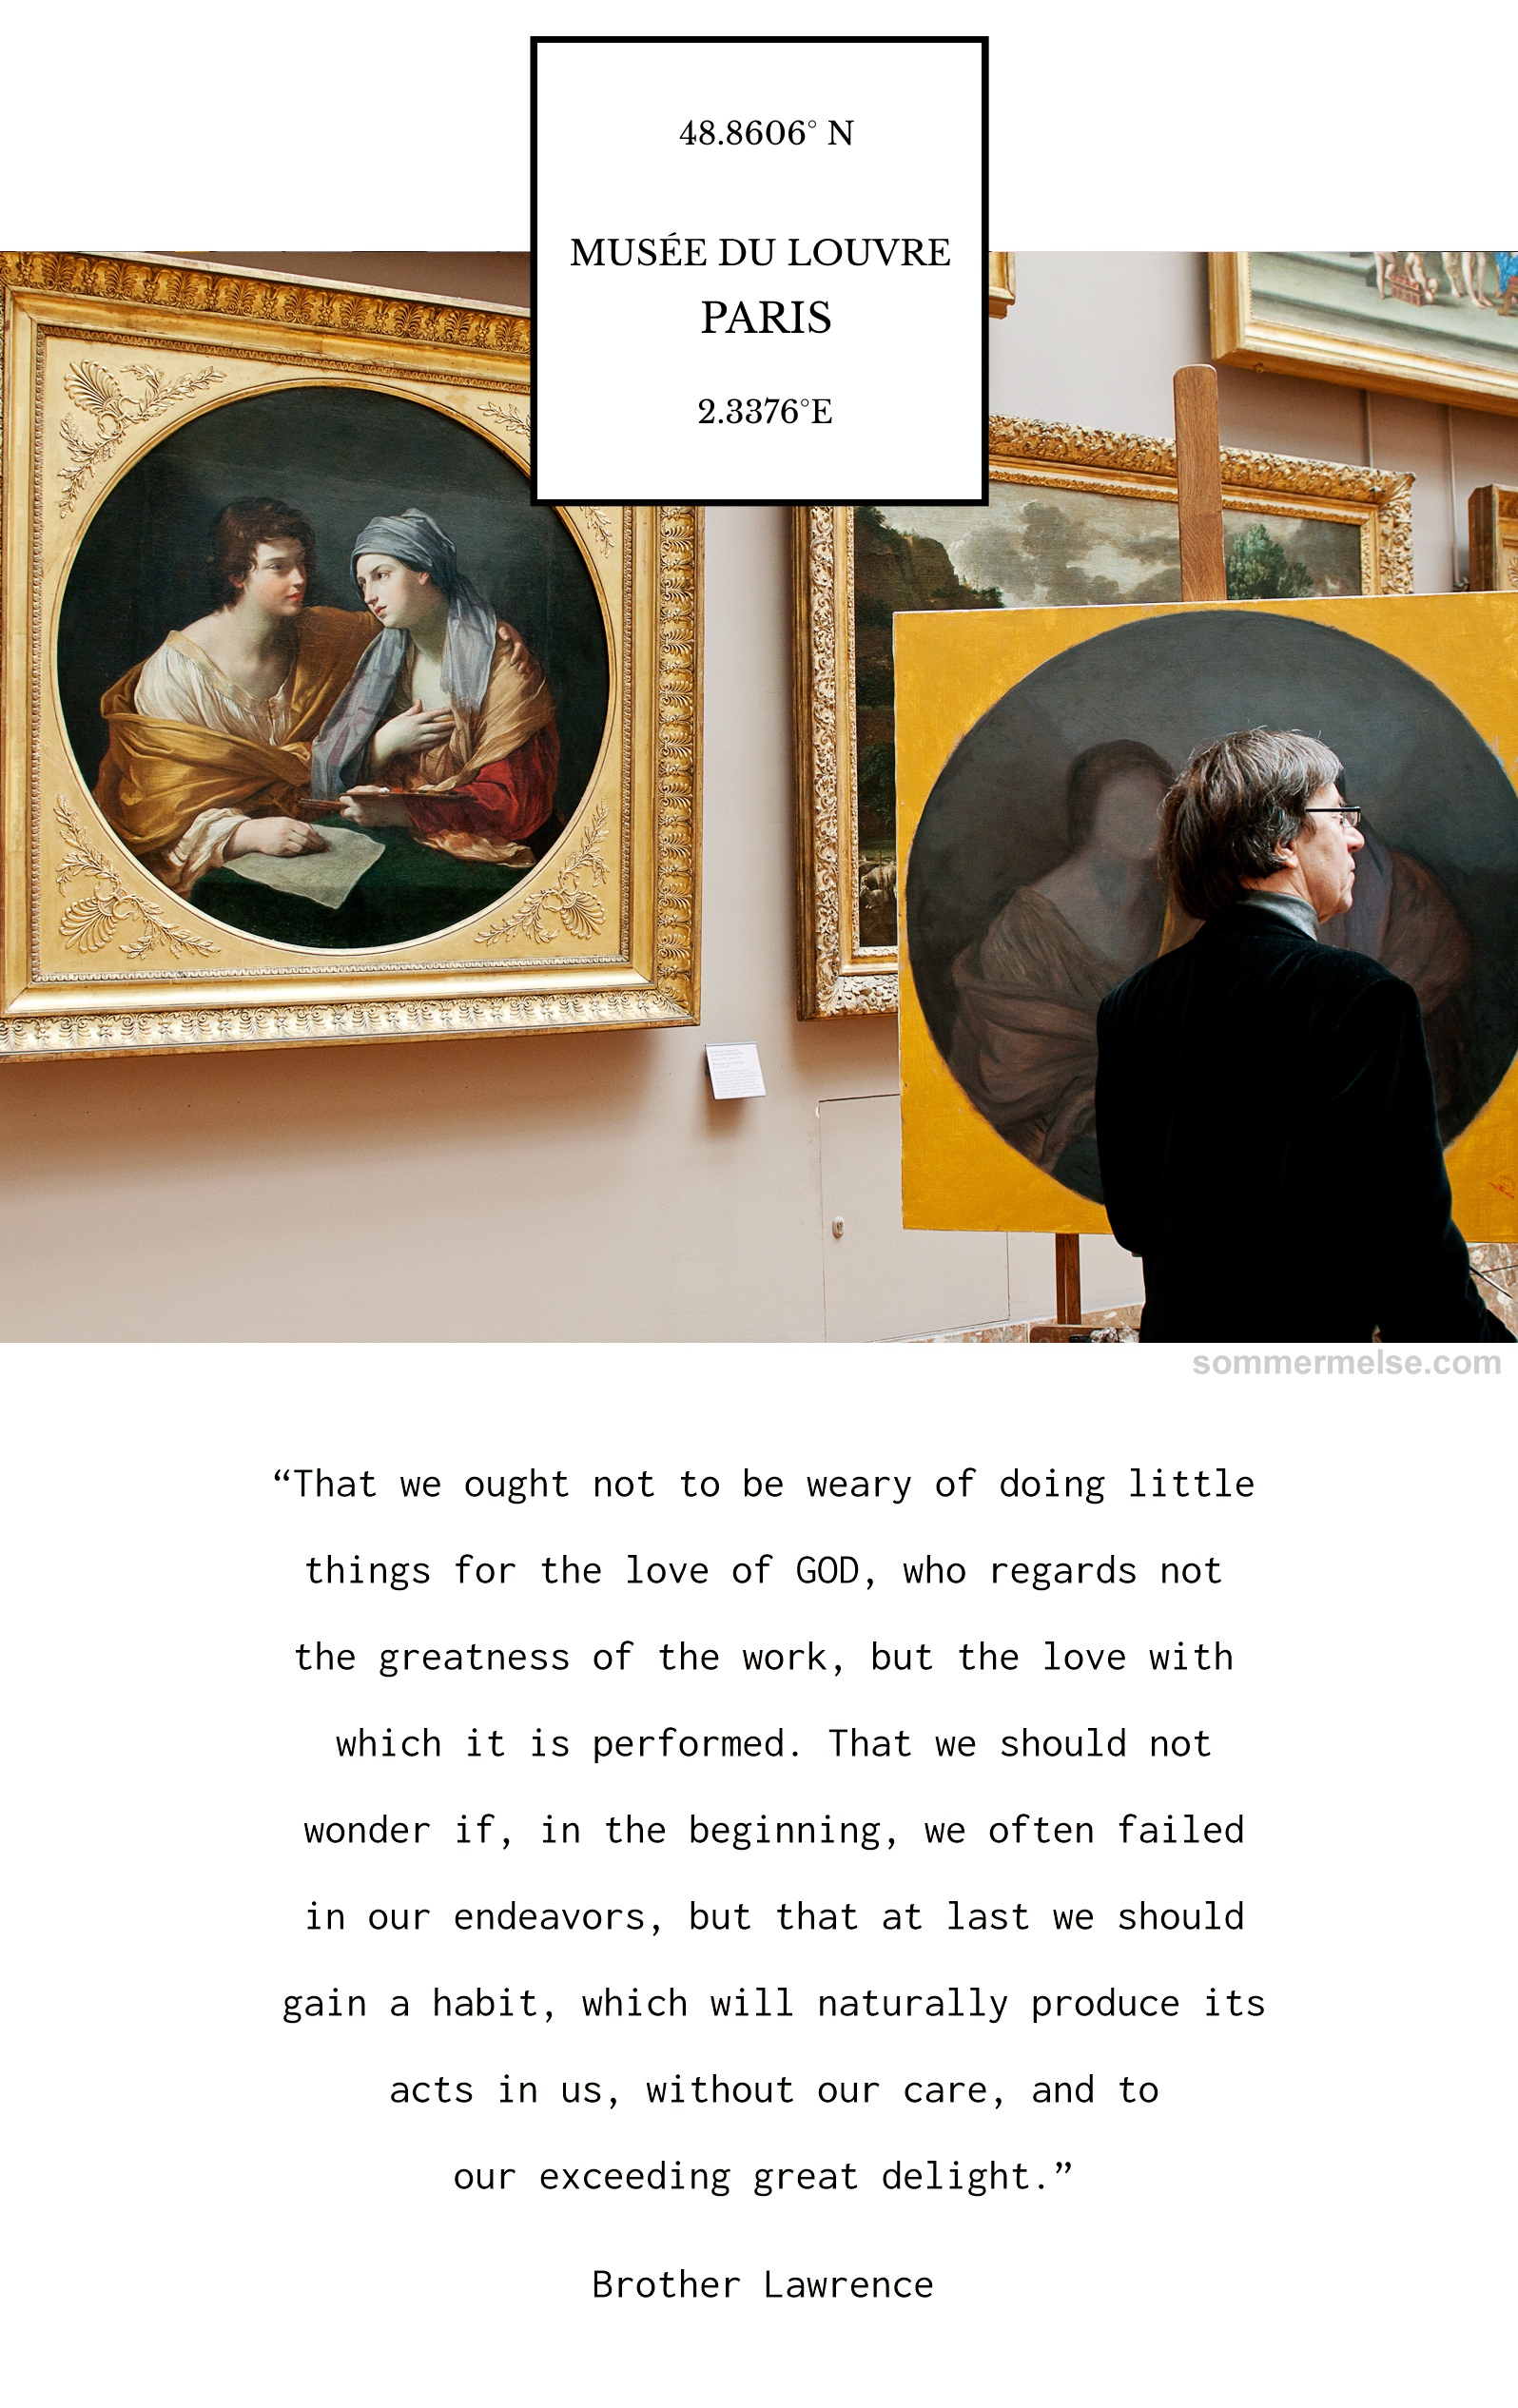 to_use_finding_wonder_we_ought_not_to_be_weary_brother_lawrence_musee_du_louvre_paris